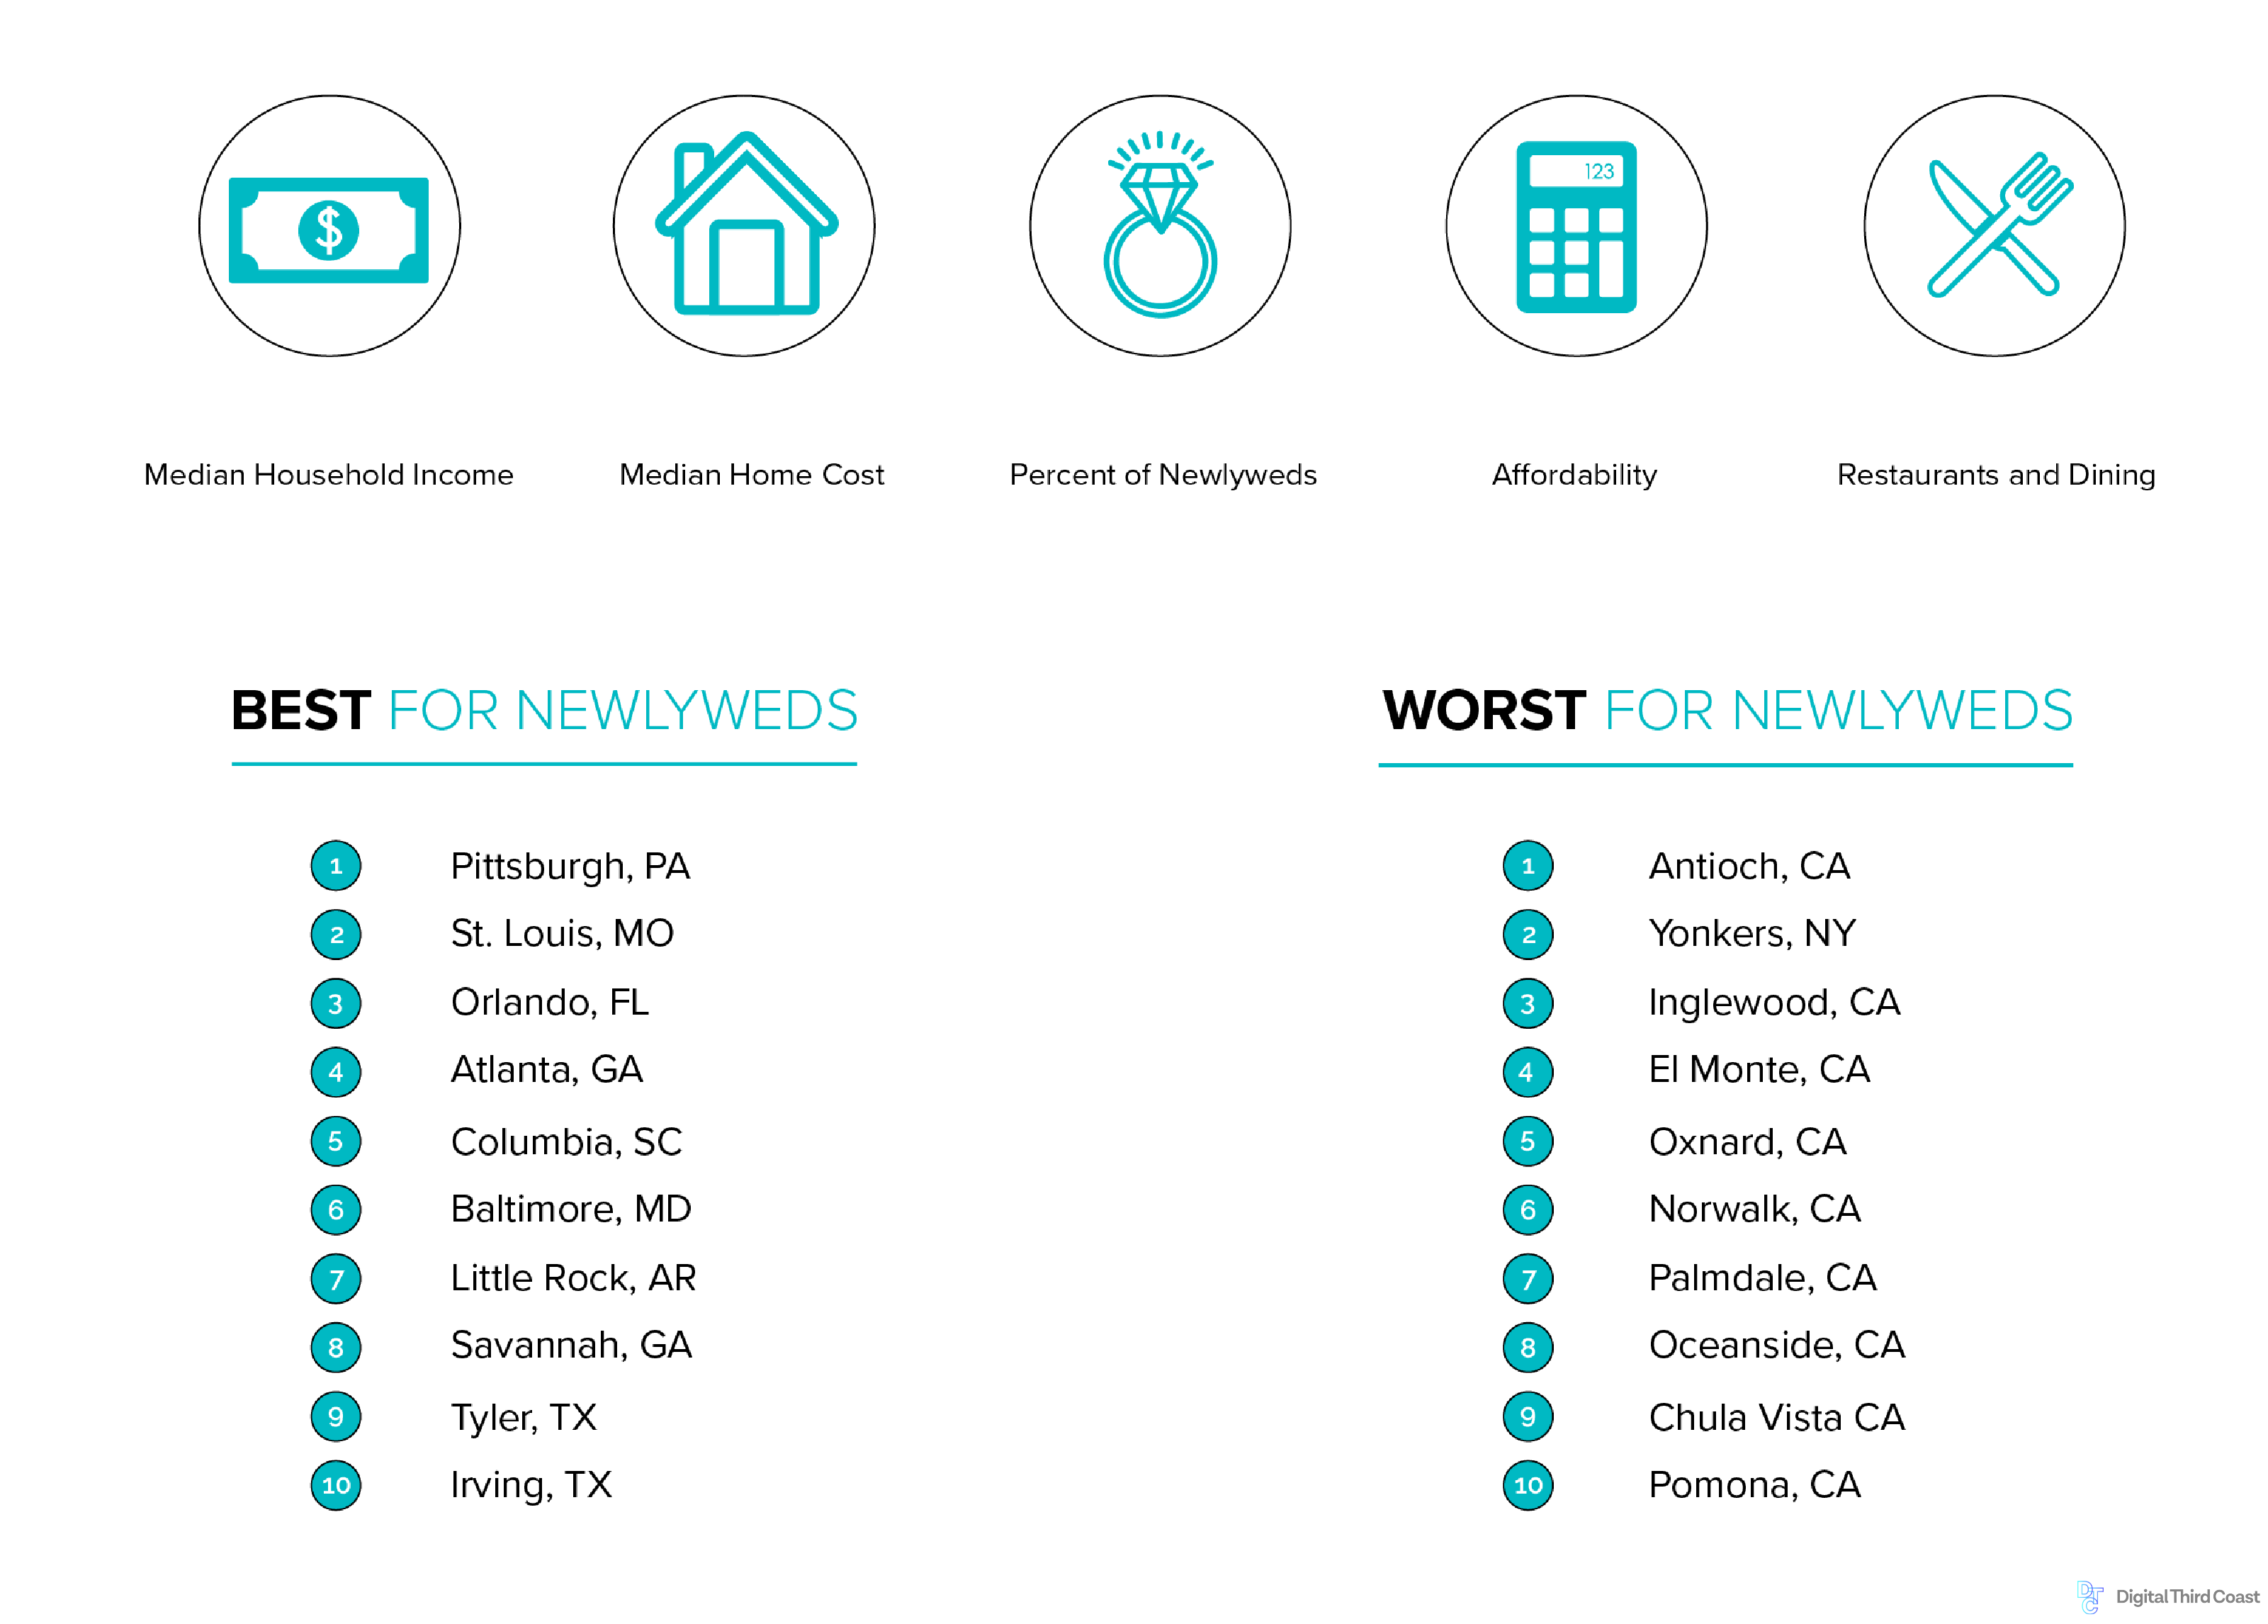 infographic: best cities for newlyweds based on median household income, median home cost, percent of newlyweds, affordability, restaurants and dining.